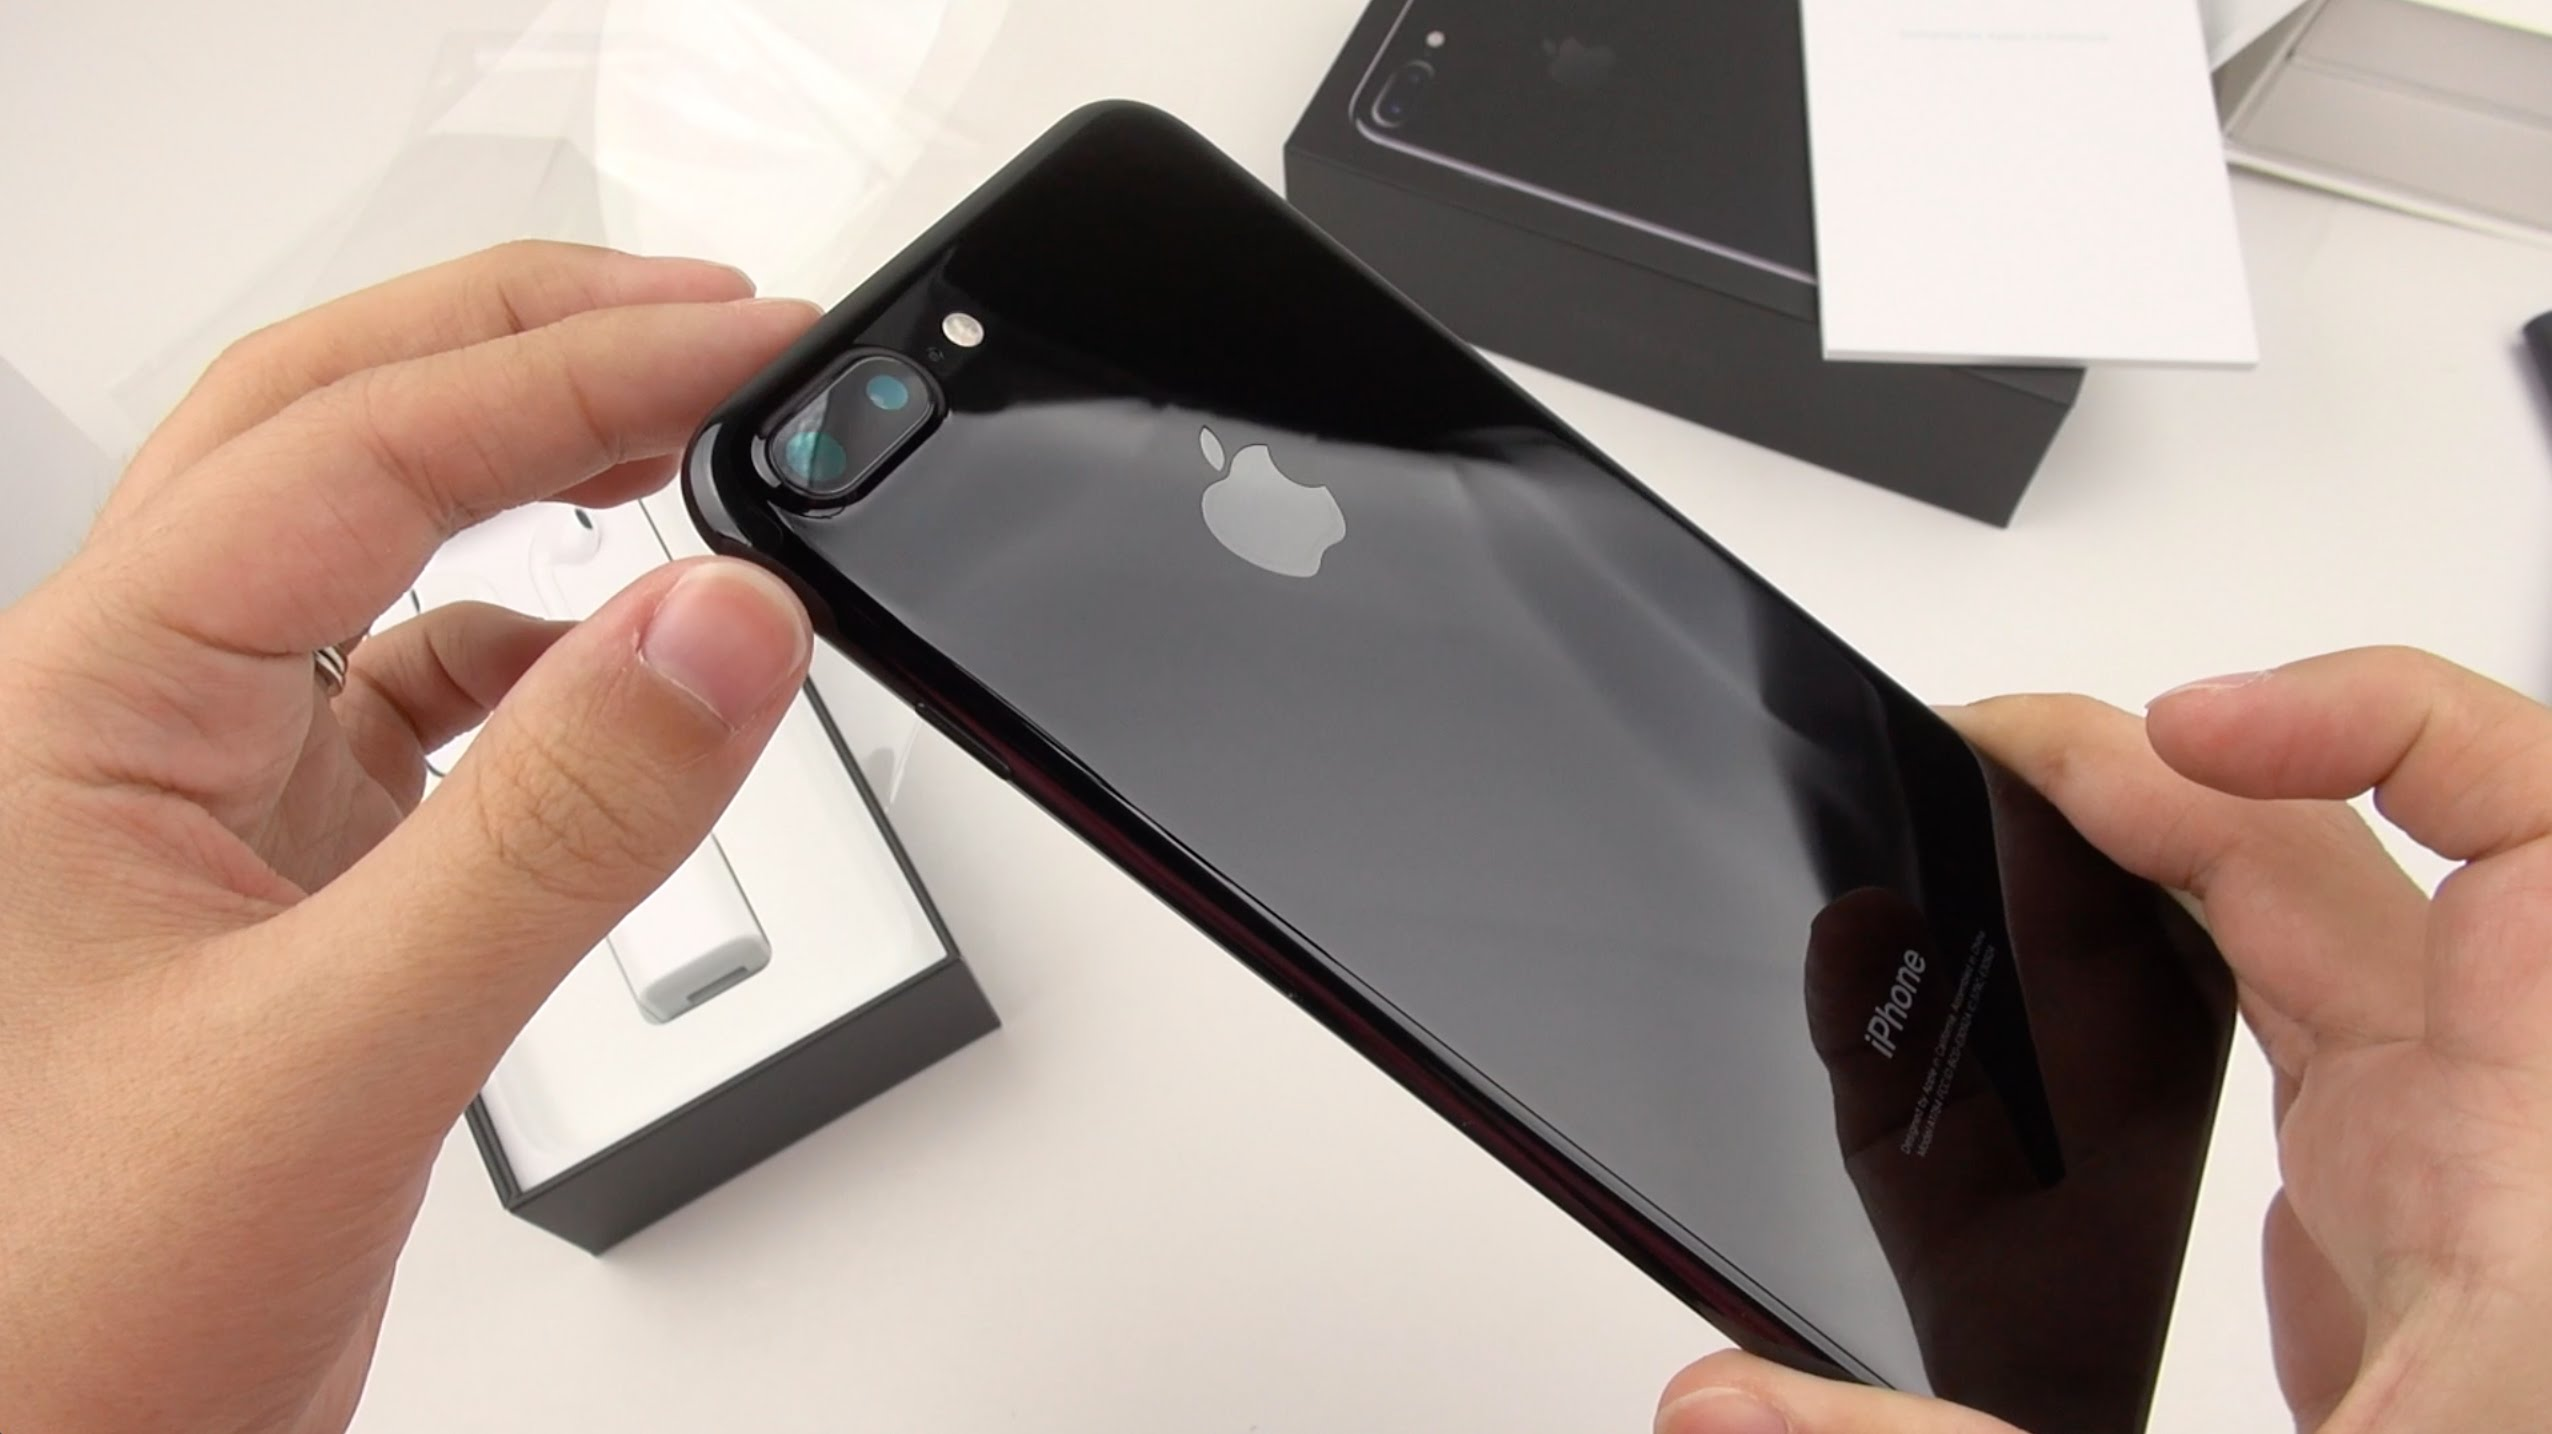 iPhone 7 Plus sistema operativo